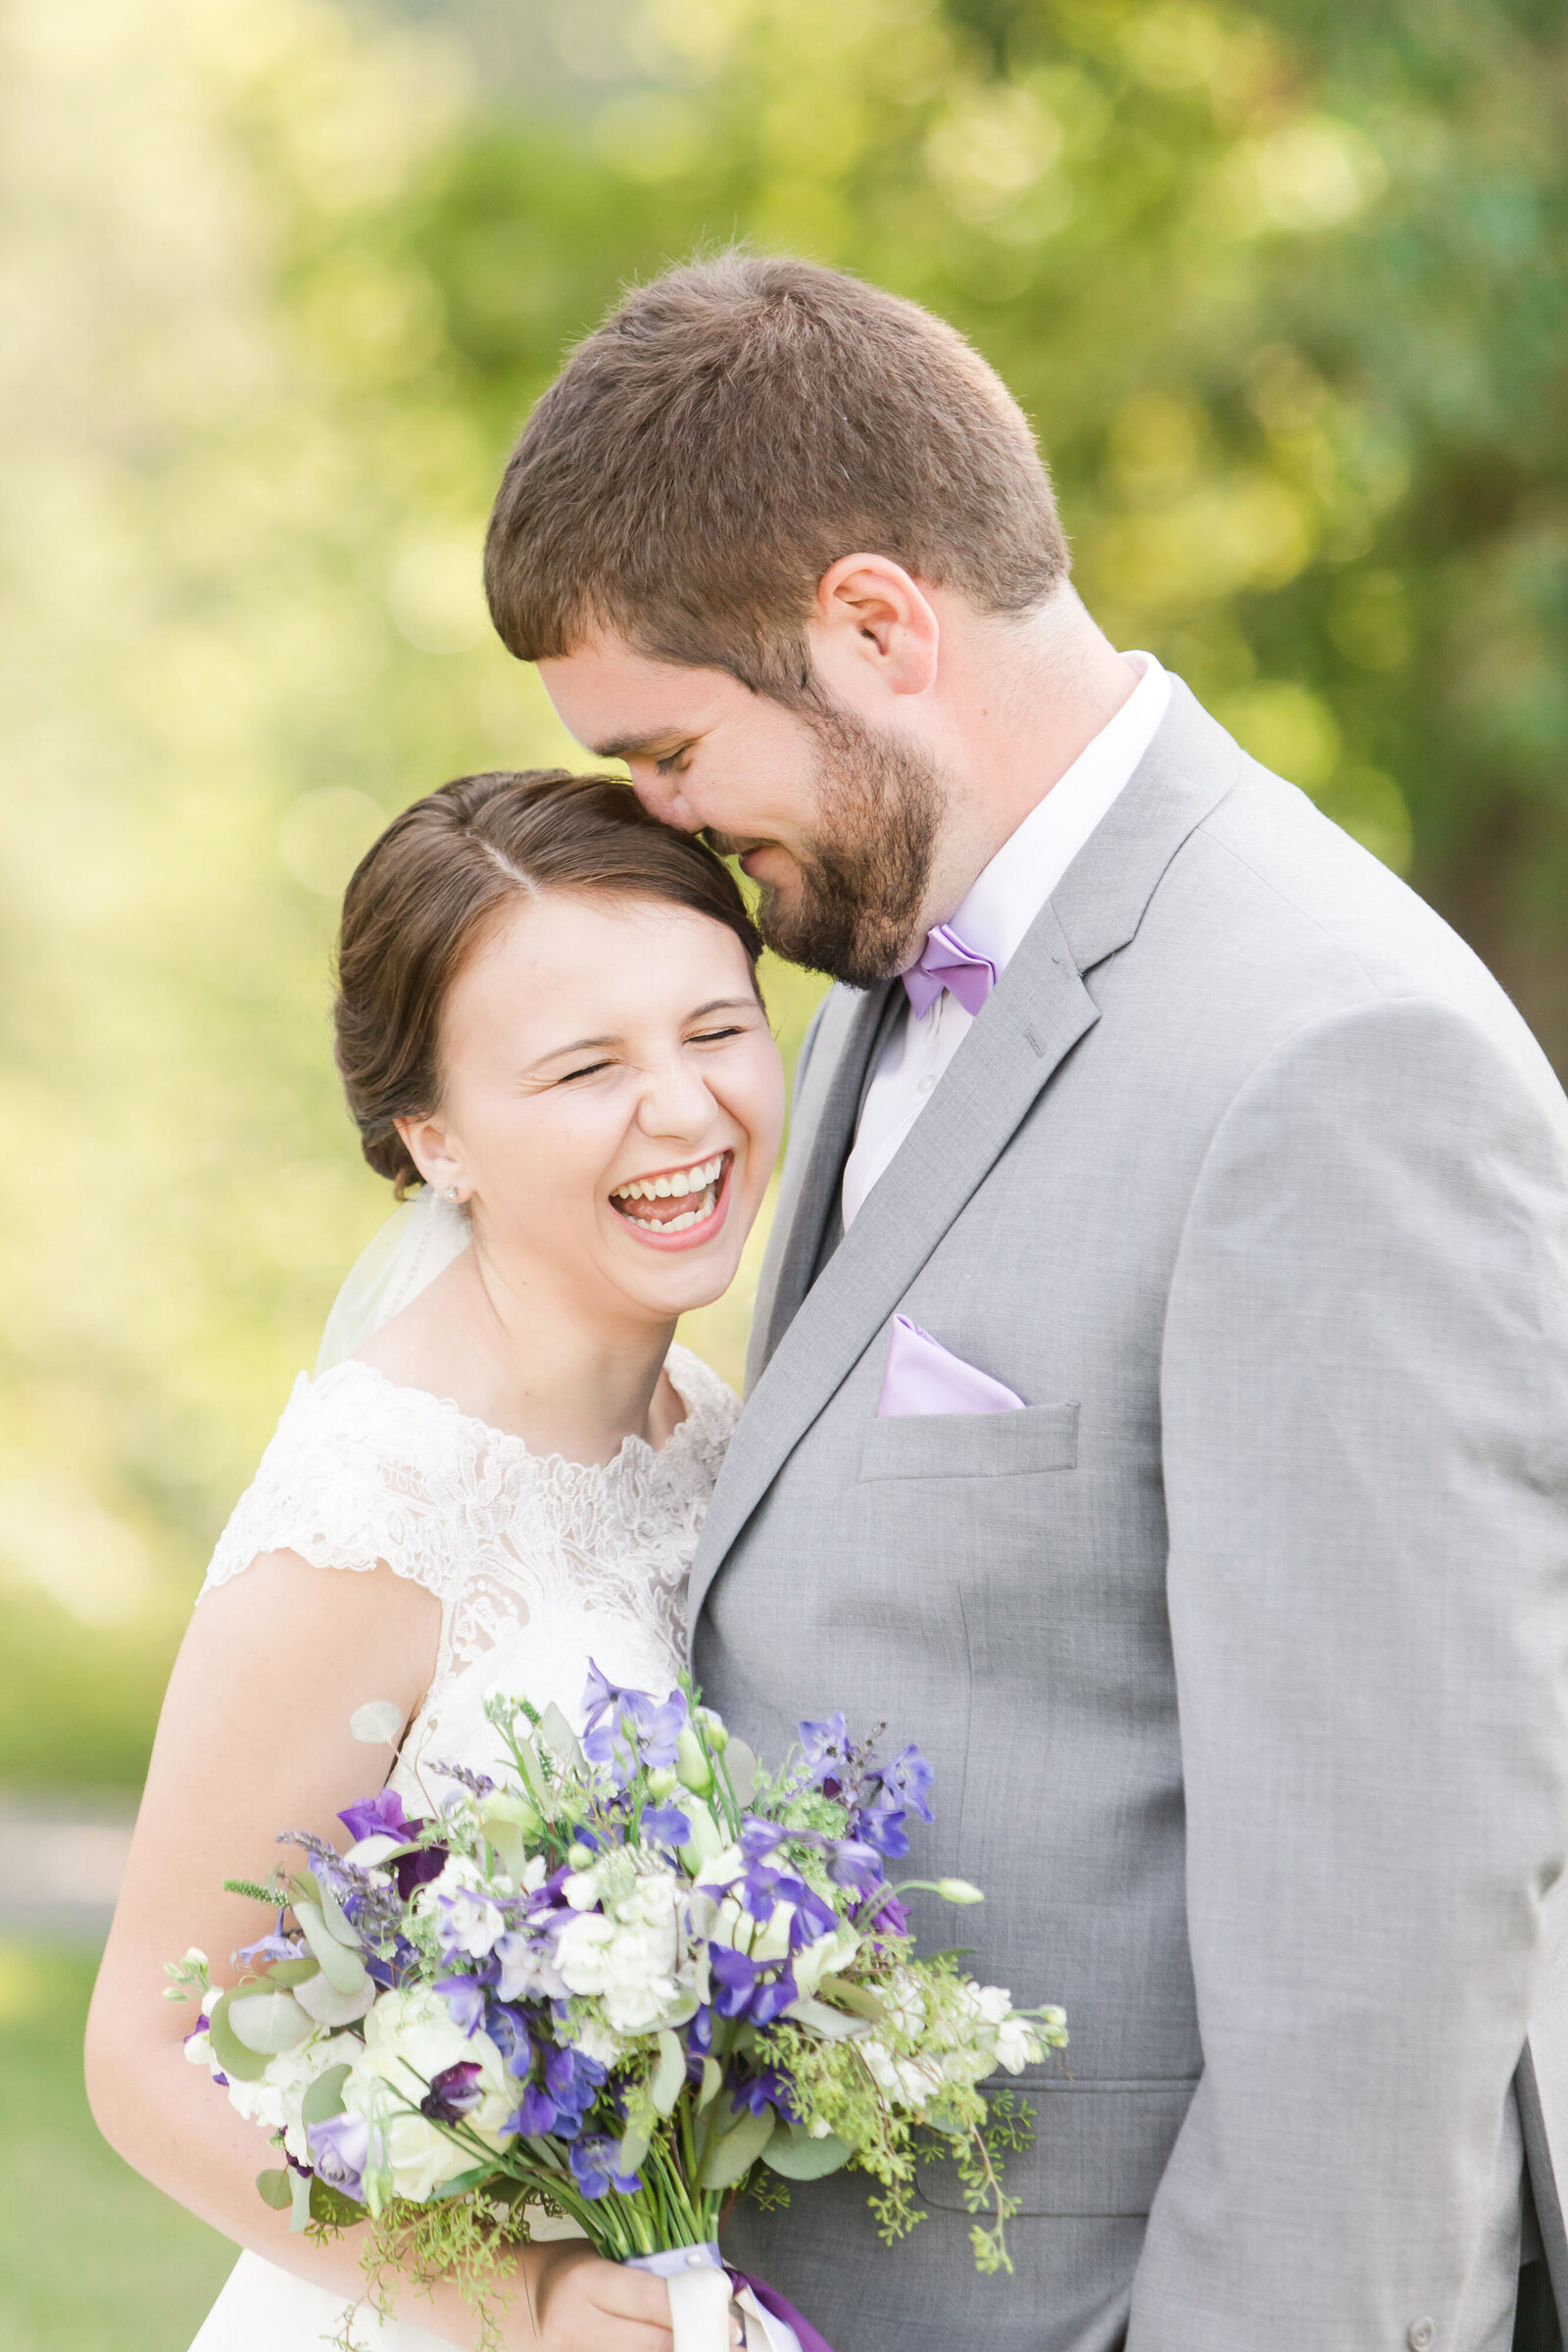 pippin-hill-farm-wedding-charlottesville-virginia--venue32